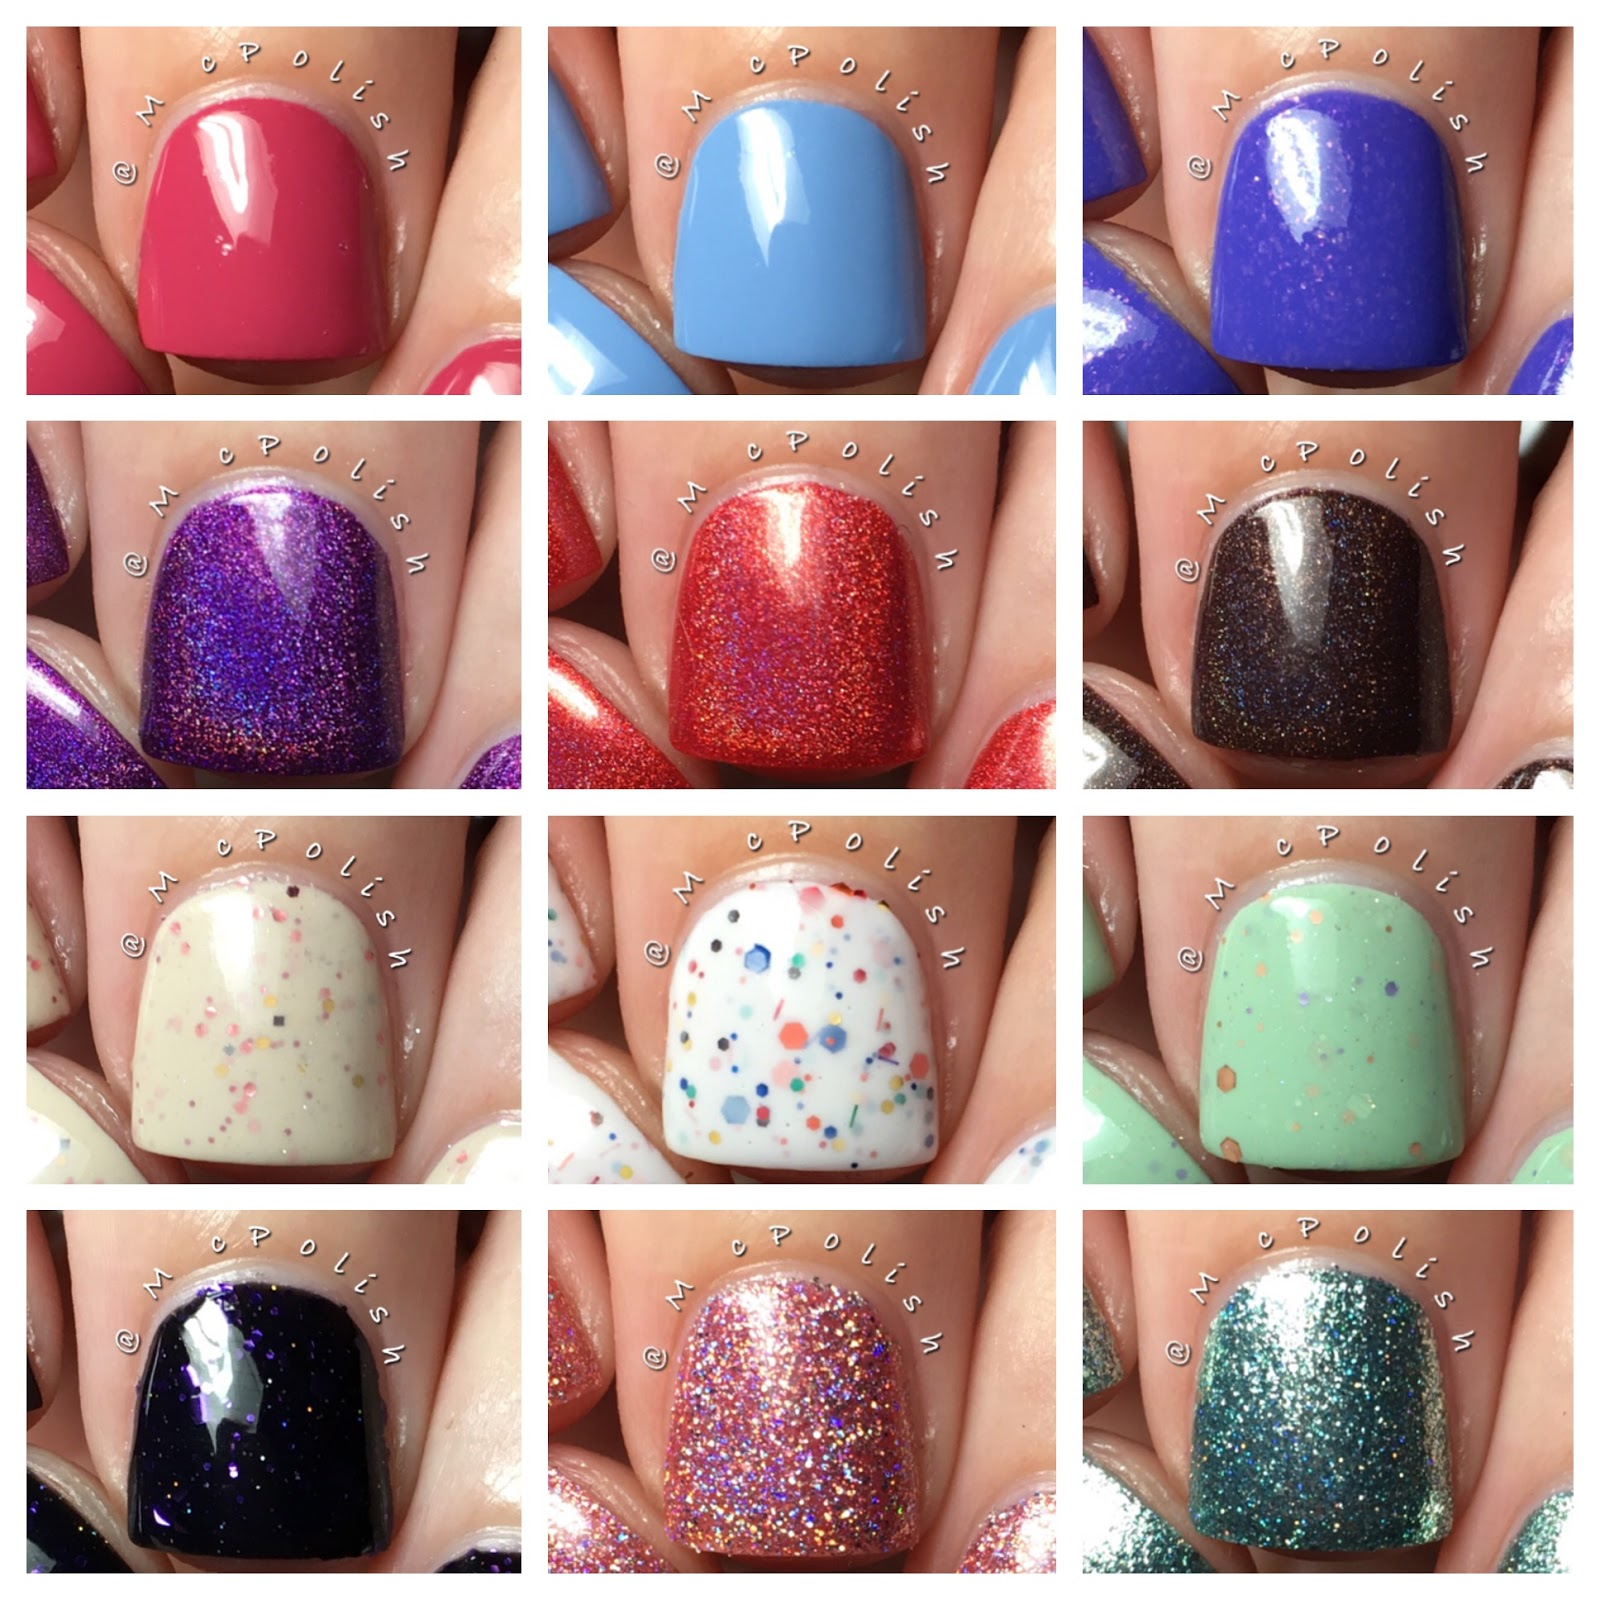 KBShimmer Fall 2016 Collection - Polish Etc.